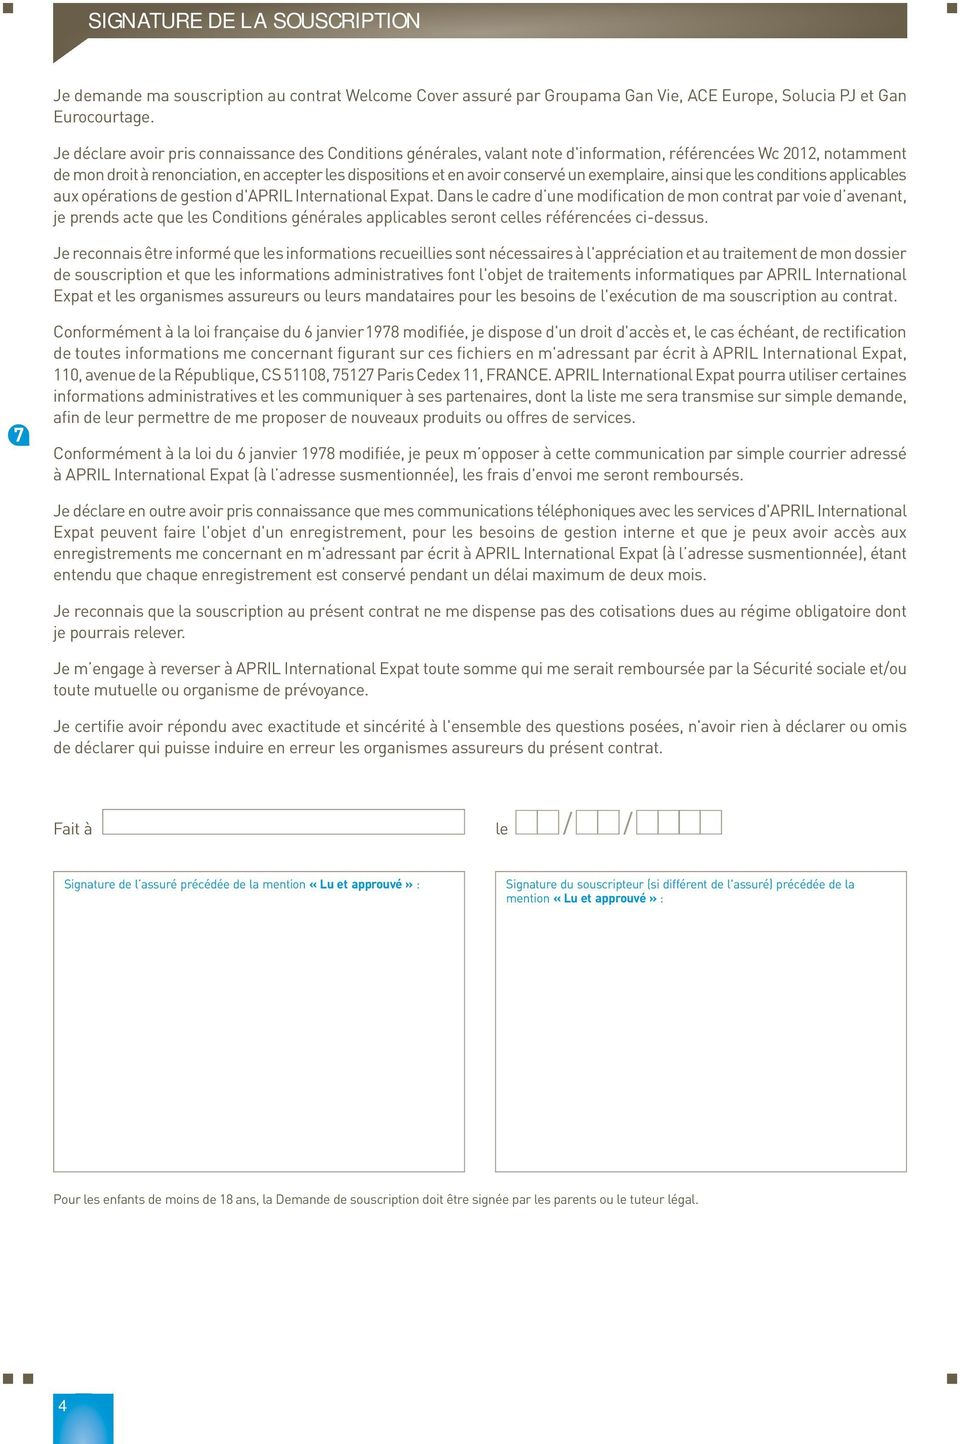 un exemplaire, ainsi que les conditions applicables aux opérations de gestion d'april International Expat.